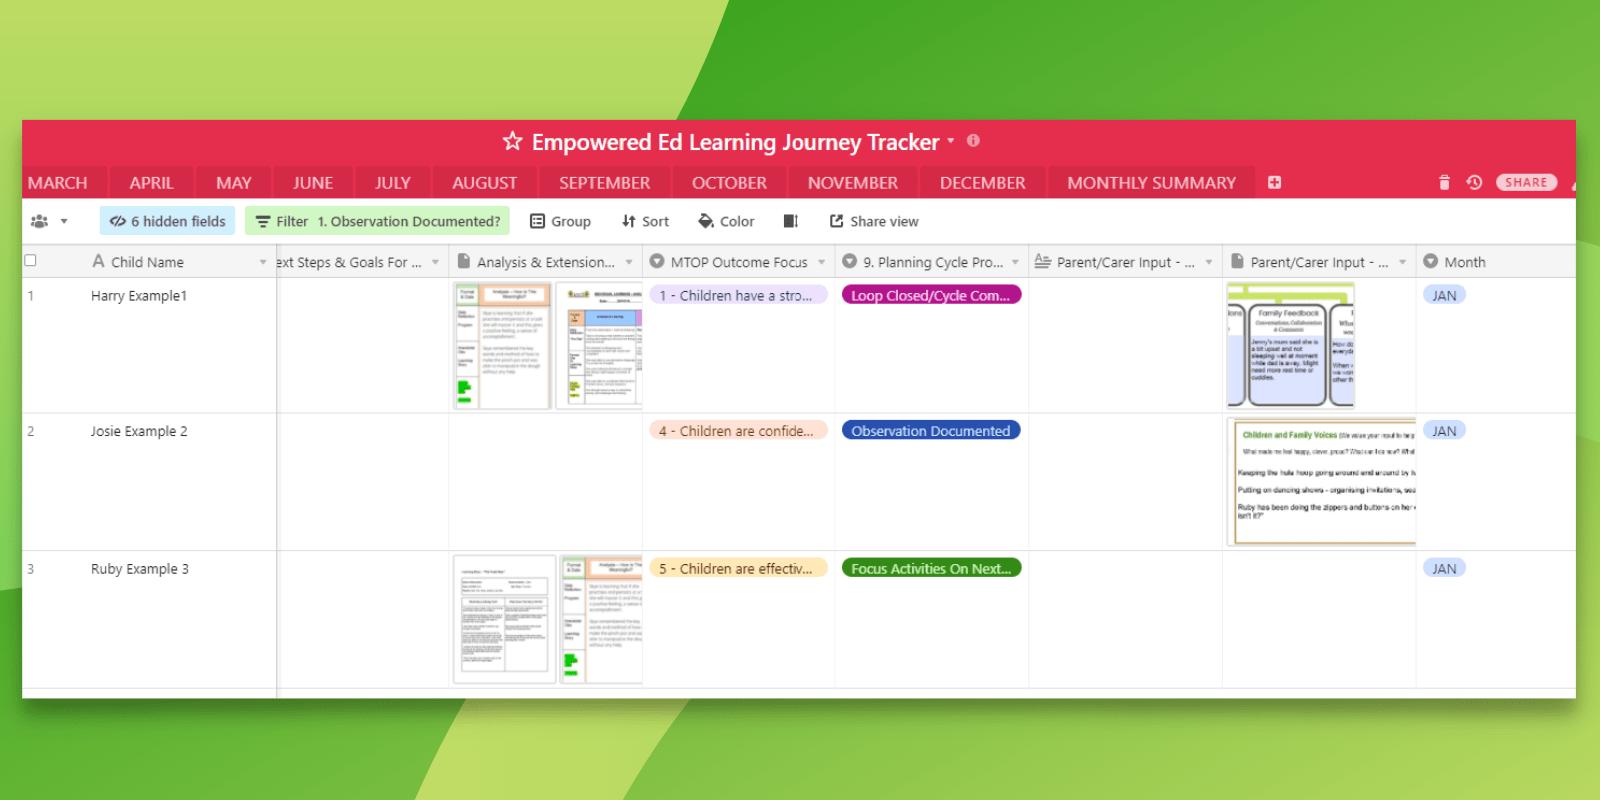 Keep track of your analysis of learning